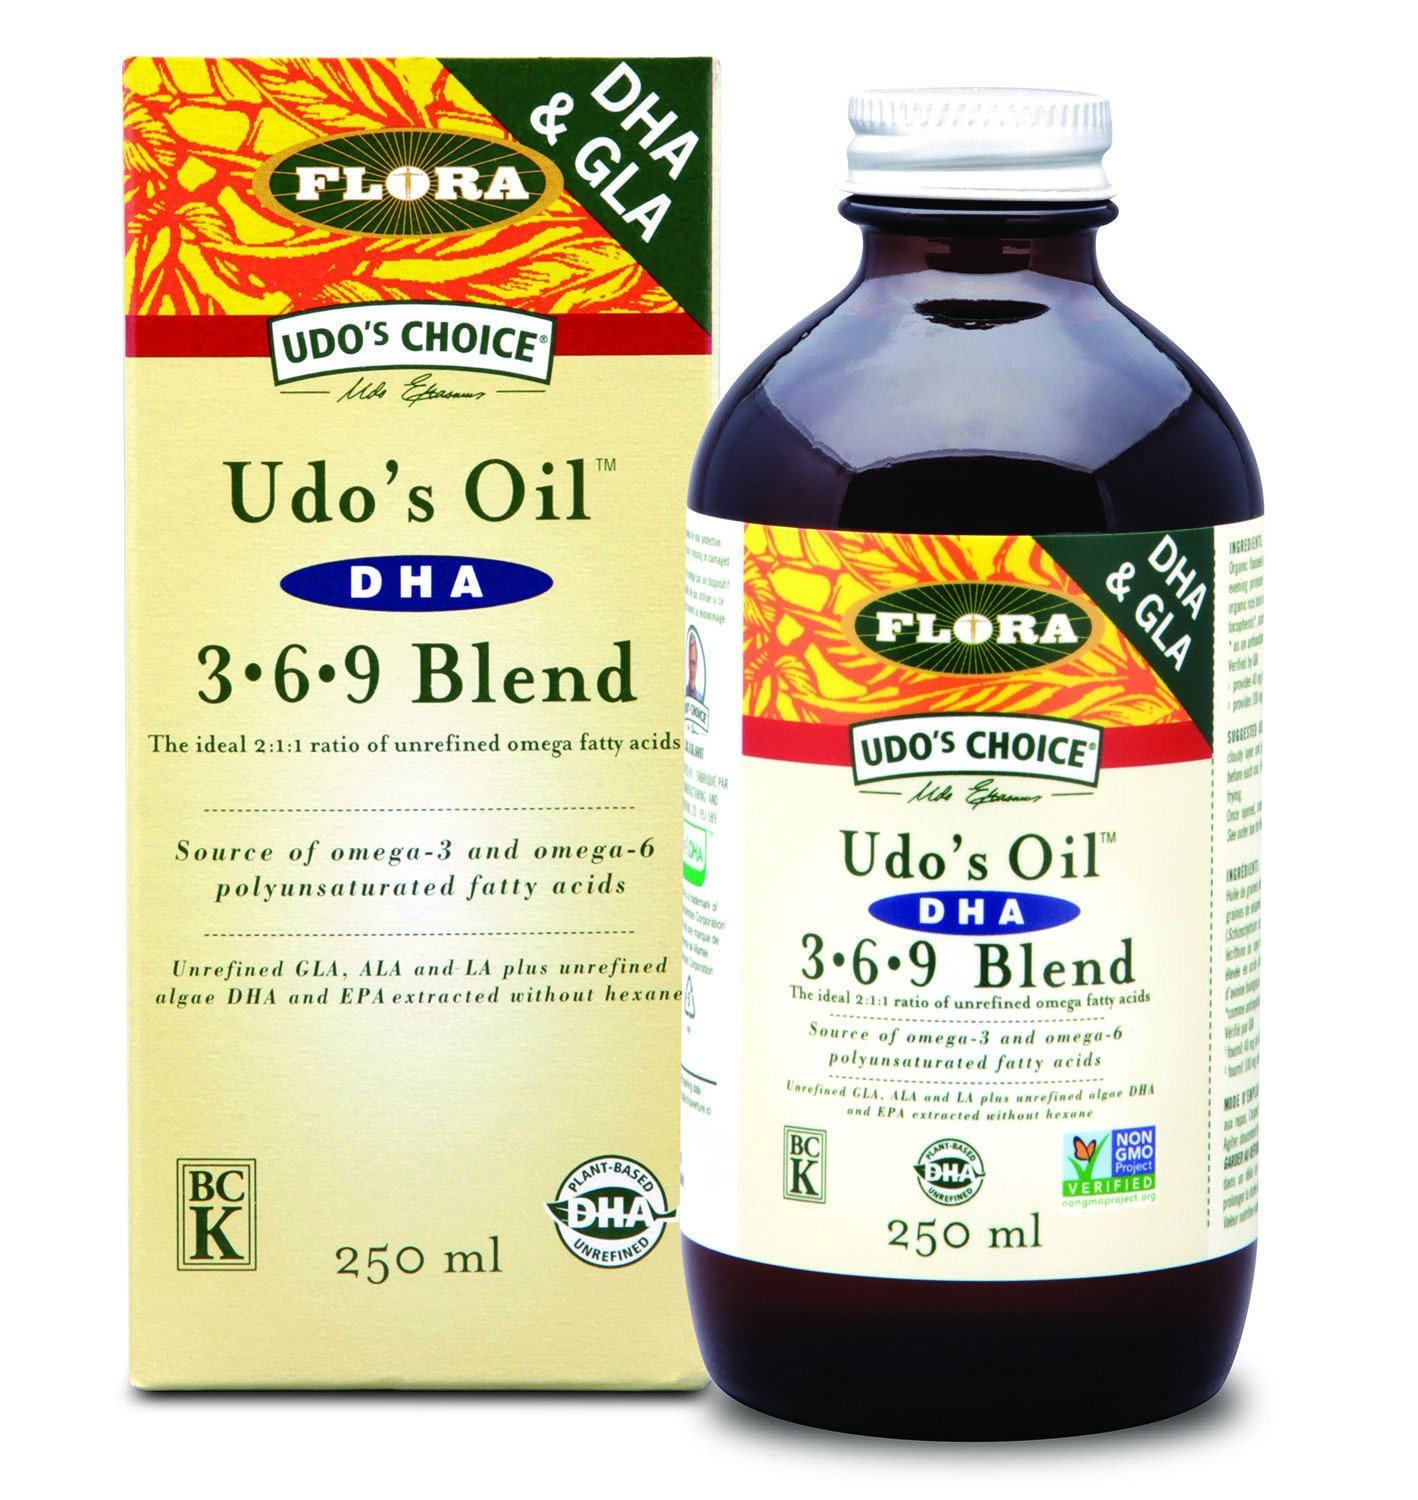 Supplements & Vitamins - Udo's Choice - Udo's Oil™ DHA 3 6 9 Blend, 250ml